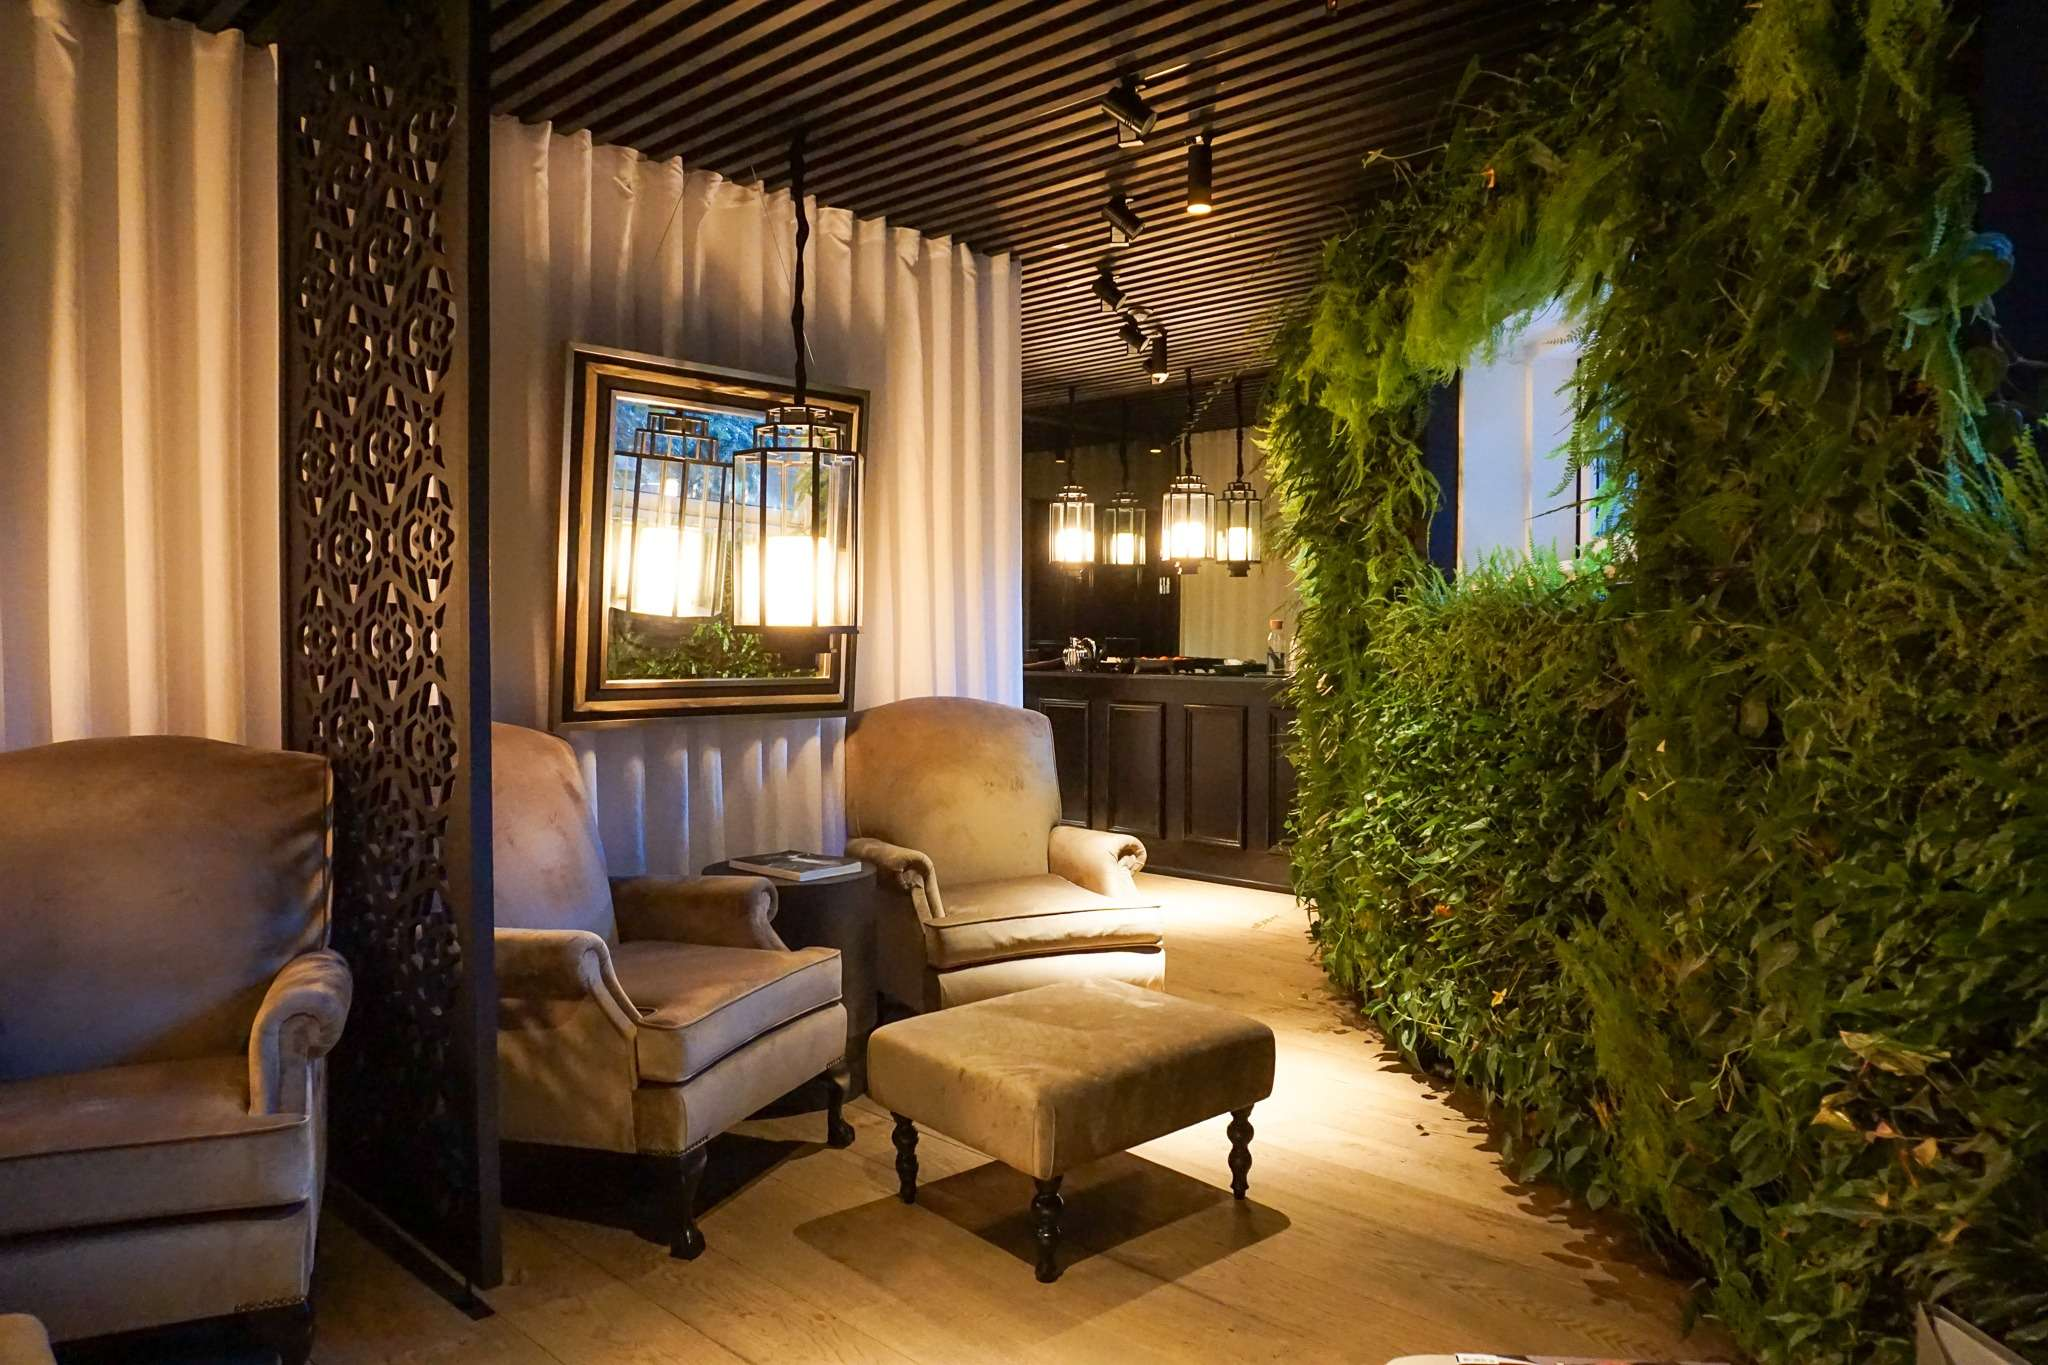 relaxation room in the spa at Nimb Hotel Copenhagen